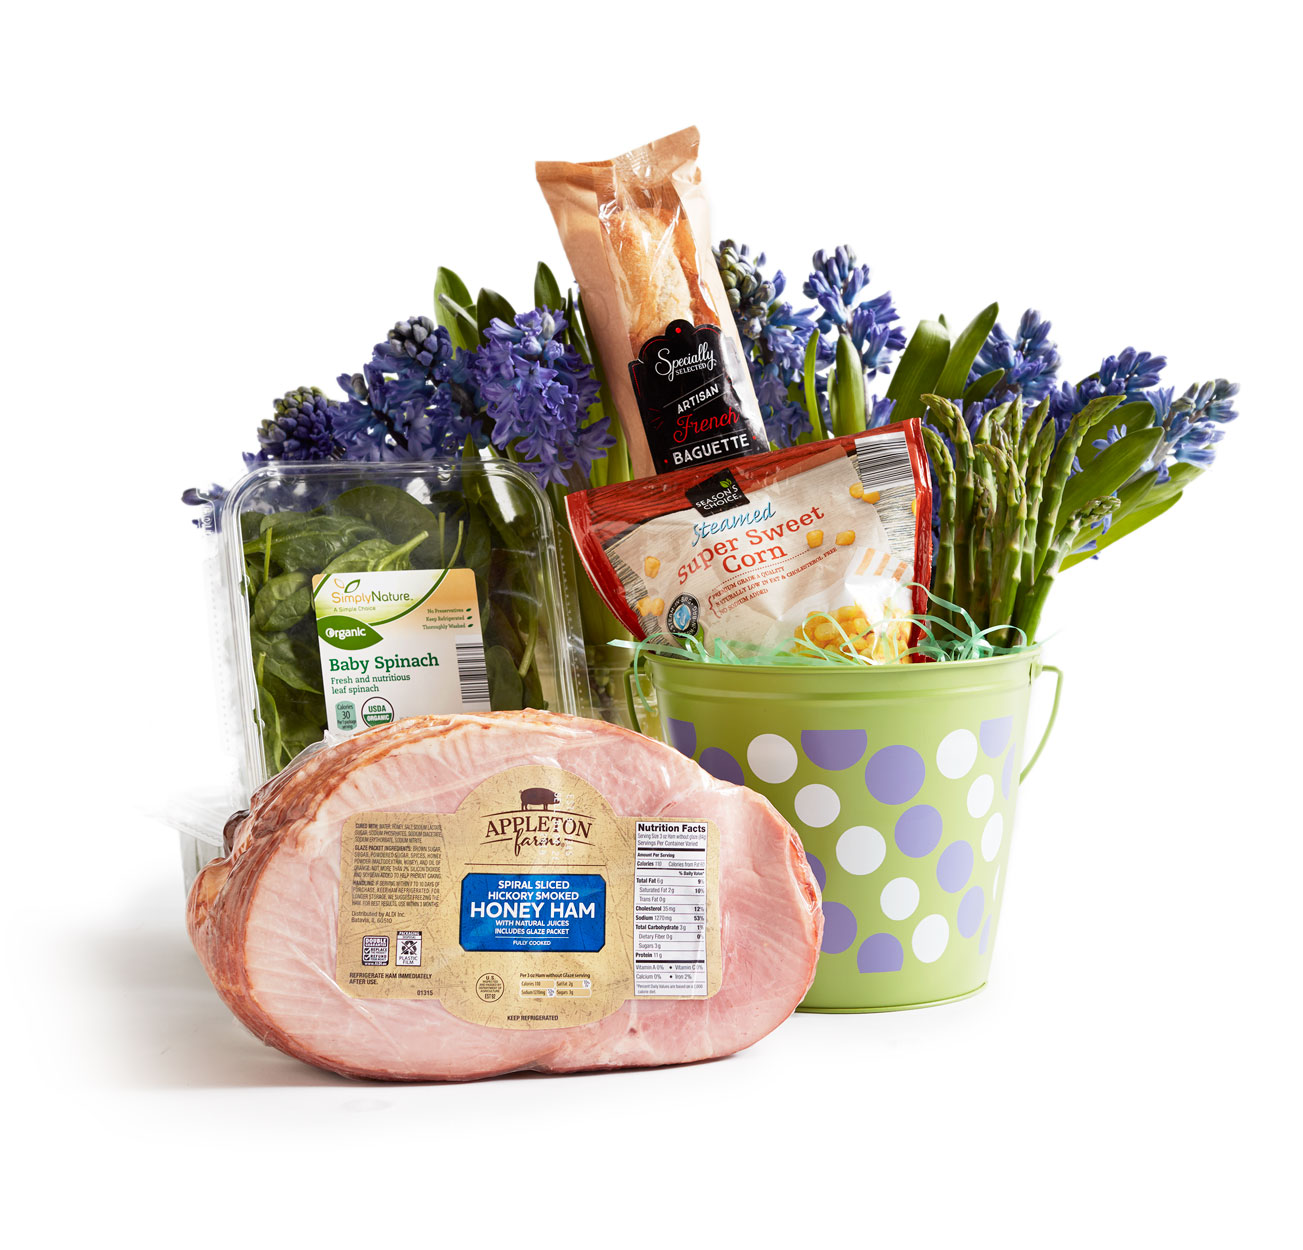 A hostess Easter themed basket with spinach, corn, honey ham and a baguette.